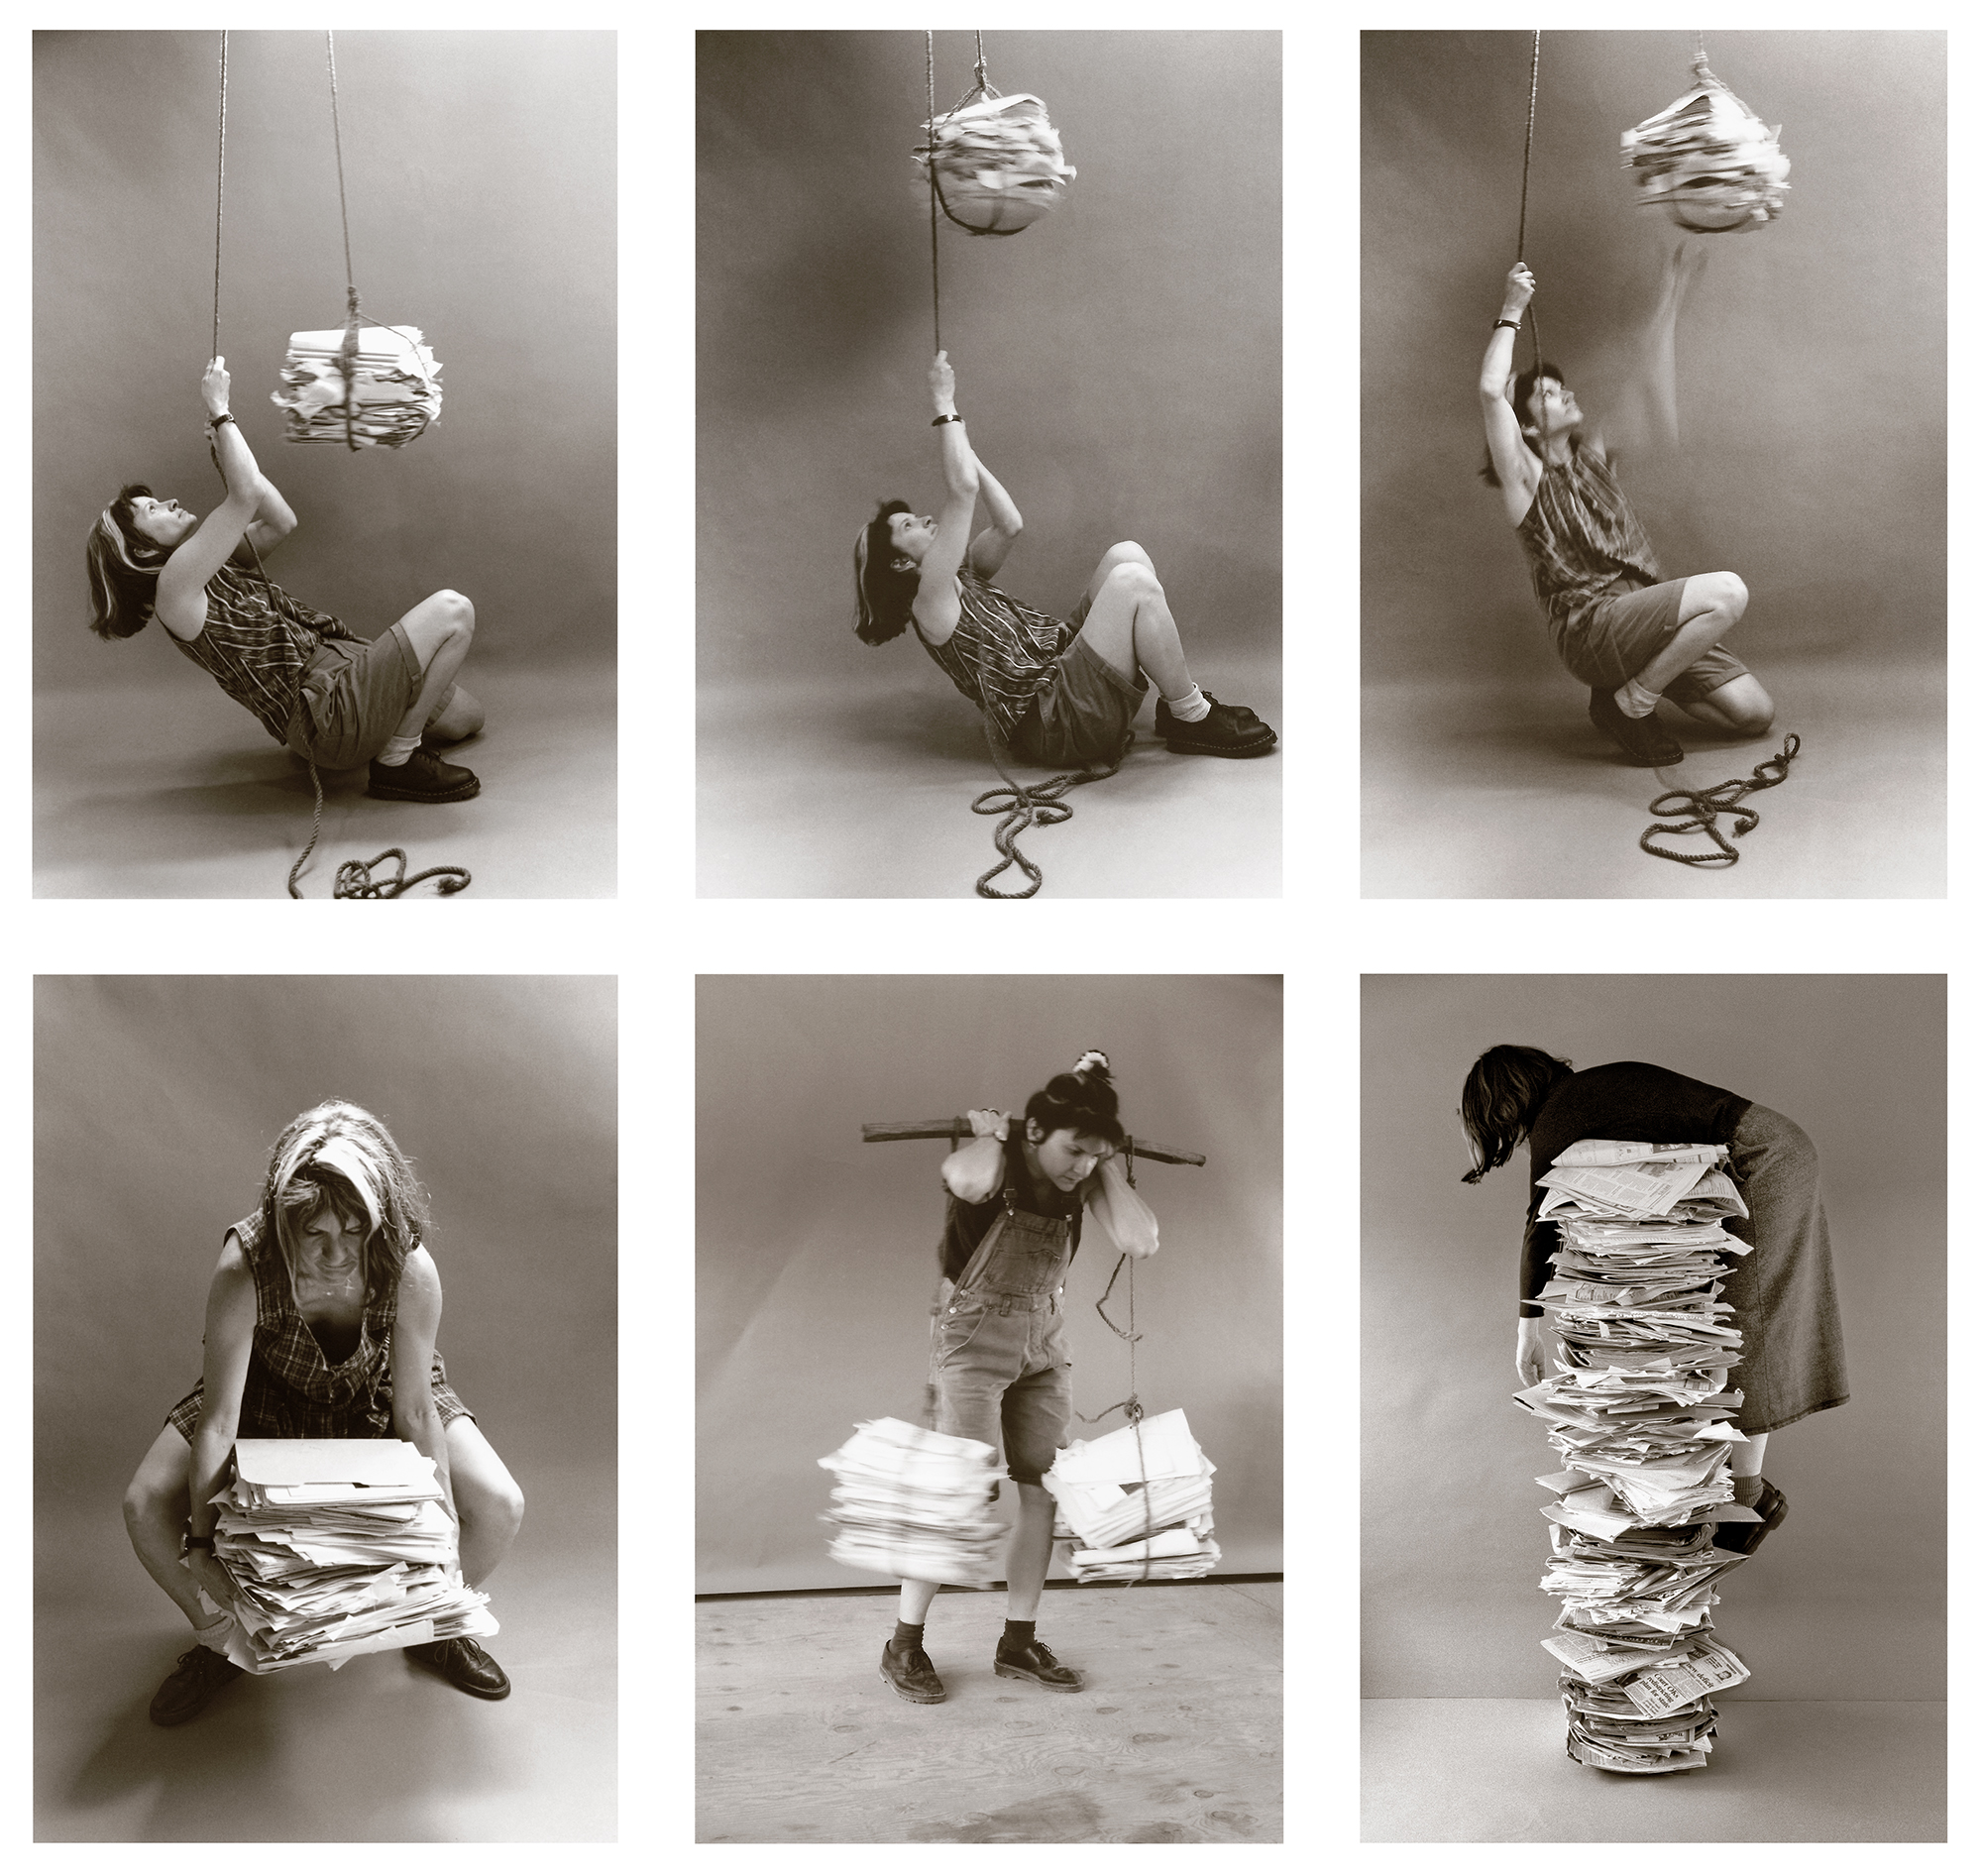 Self-Portraits with Files (1995/2020); on view in the exhibit, Access, curated by Ani Ohanessian, Ara Oshagan and Anahid Oshagan at ReflectSpace Gallery, Glendale CA